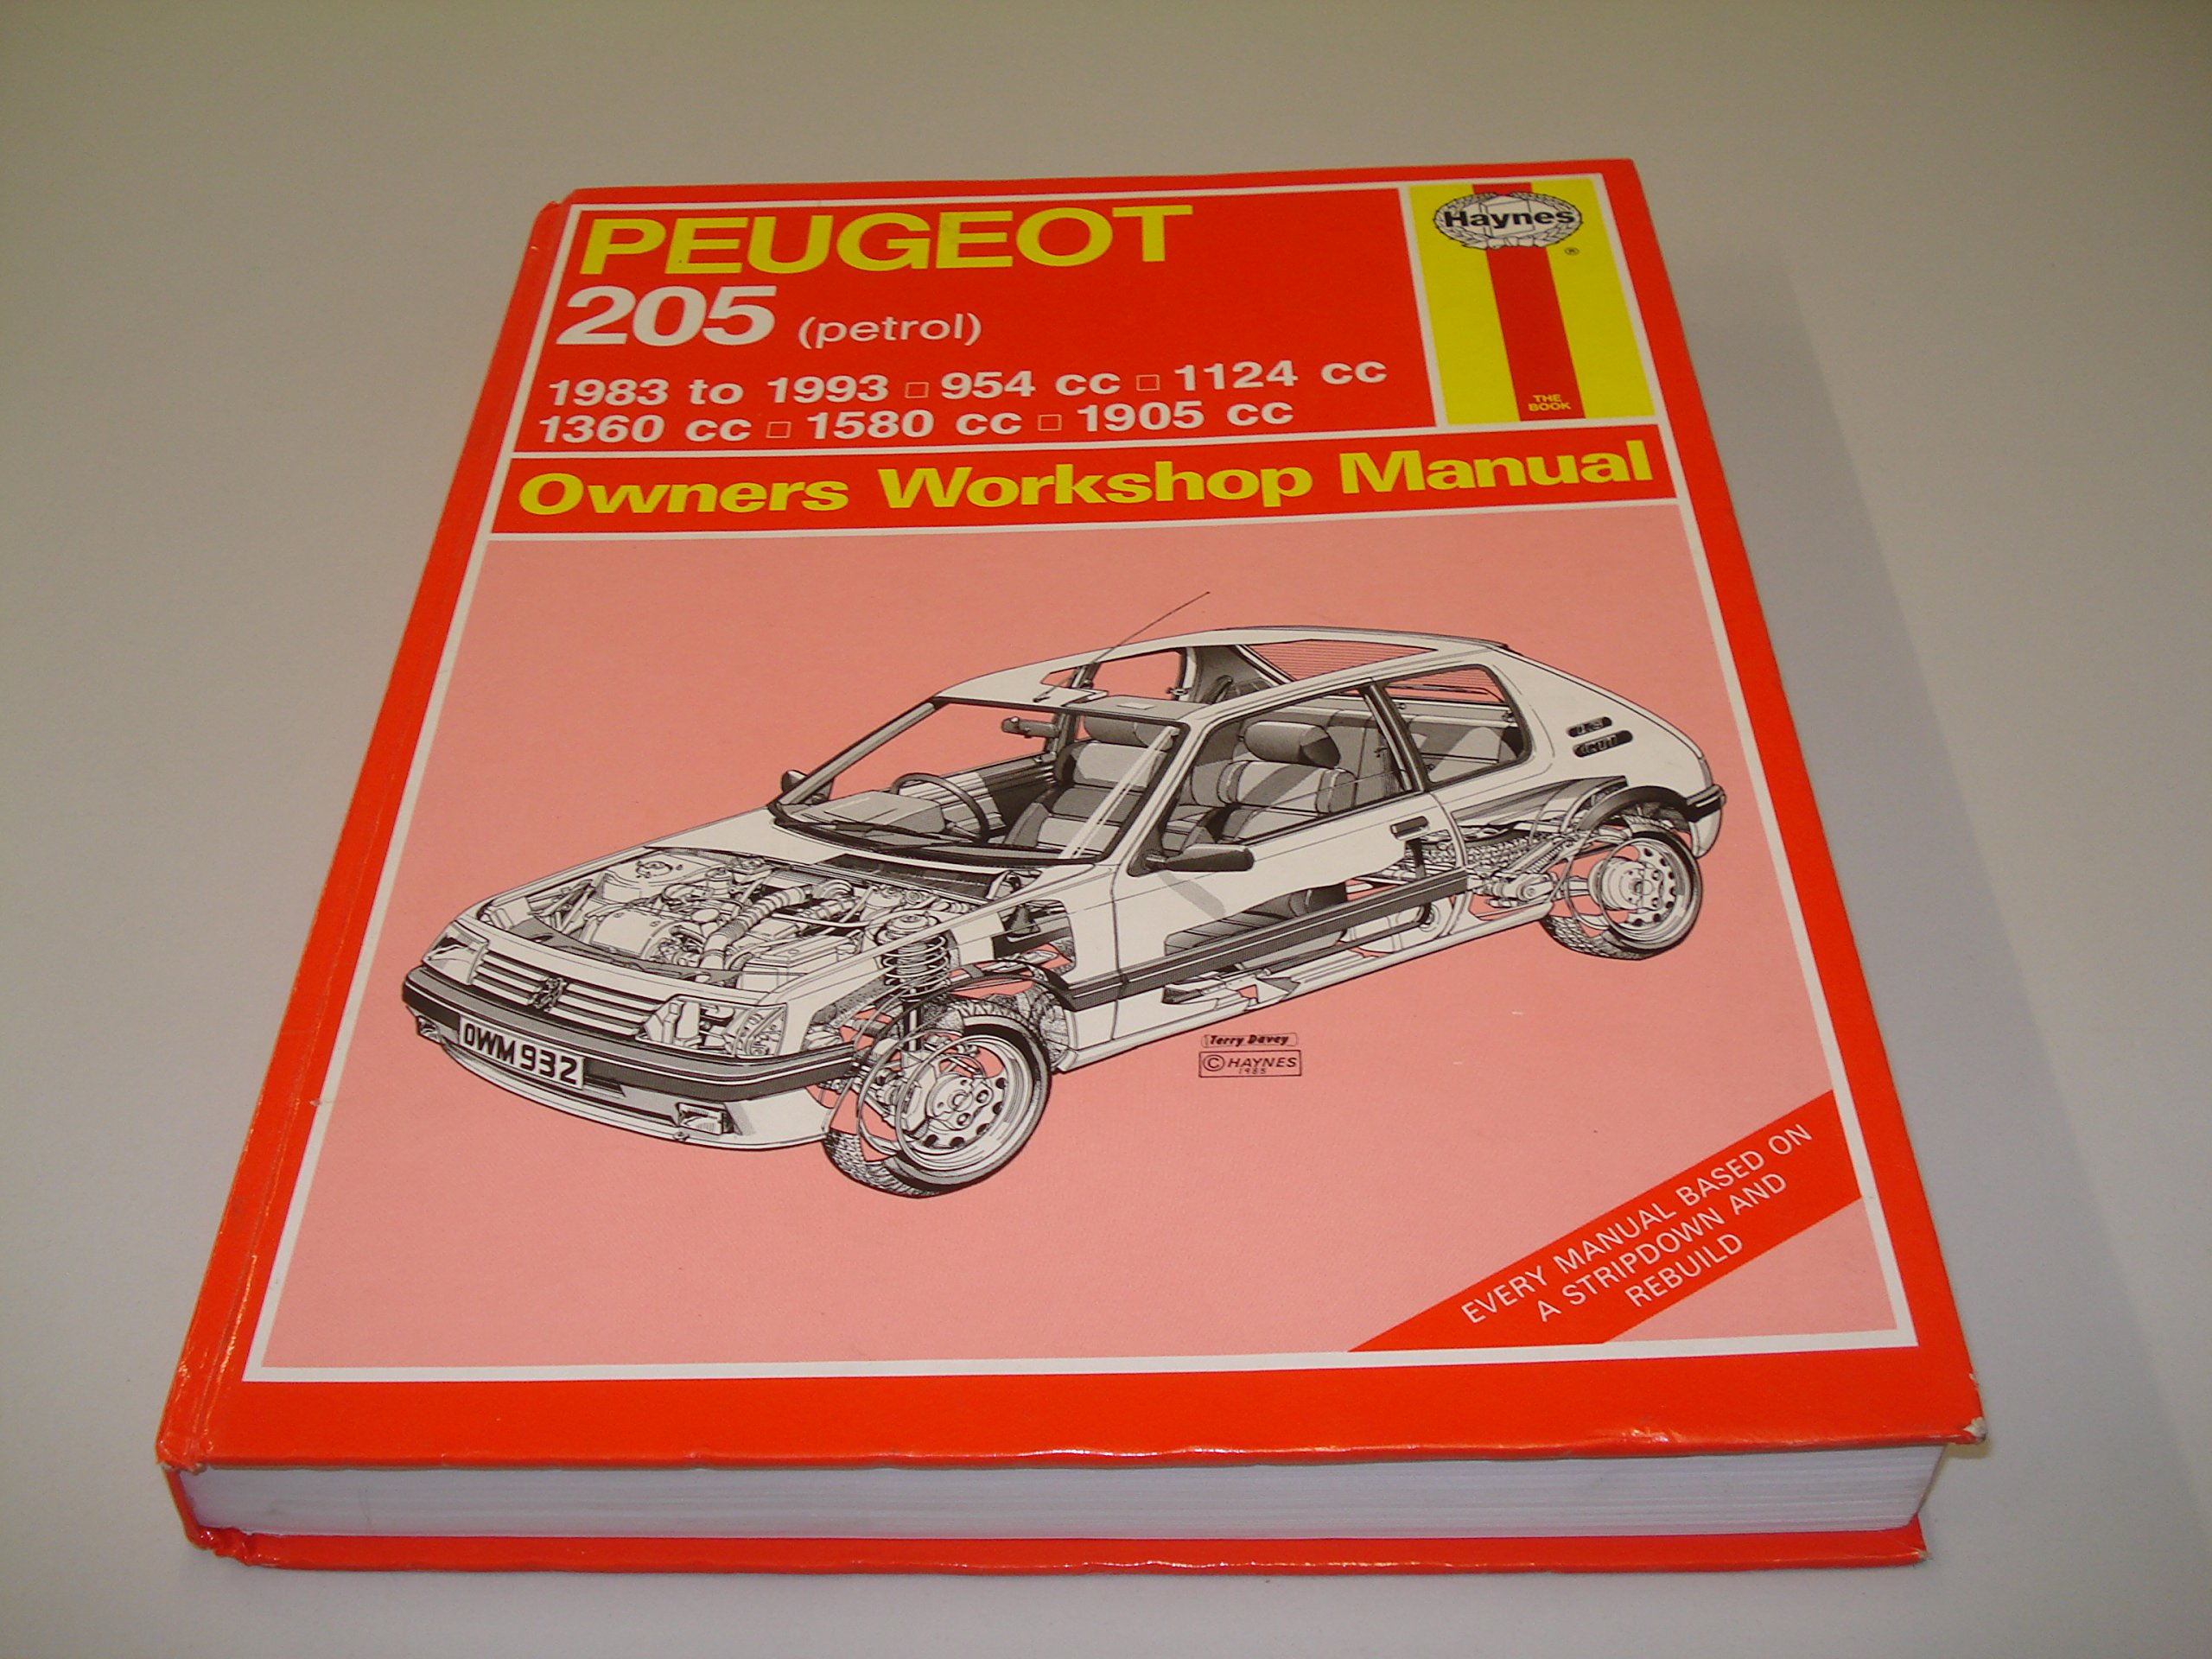 Peugeot 205 Owners Workshop Manual (Haynes owners workshop manual series): A. K. Legg: 9781850109150: Amazon.com: Books